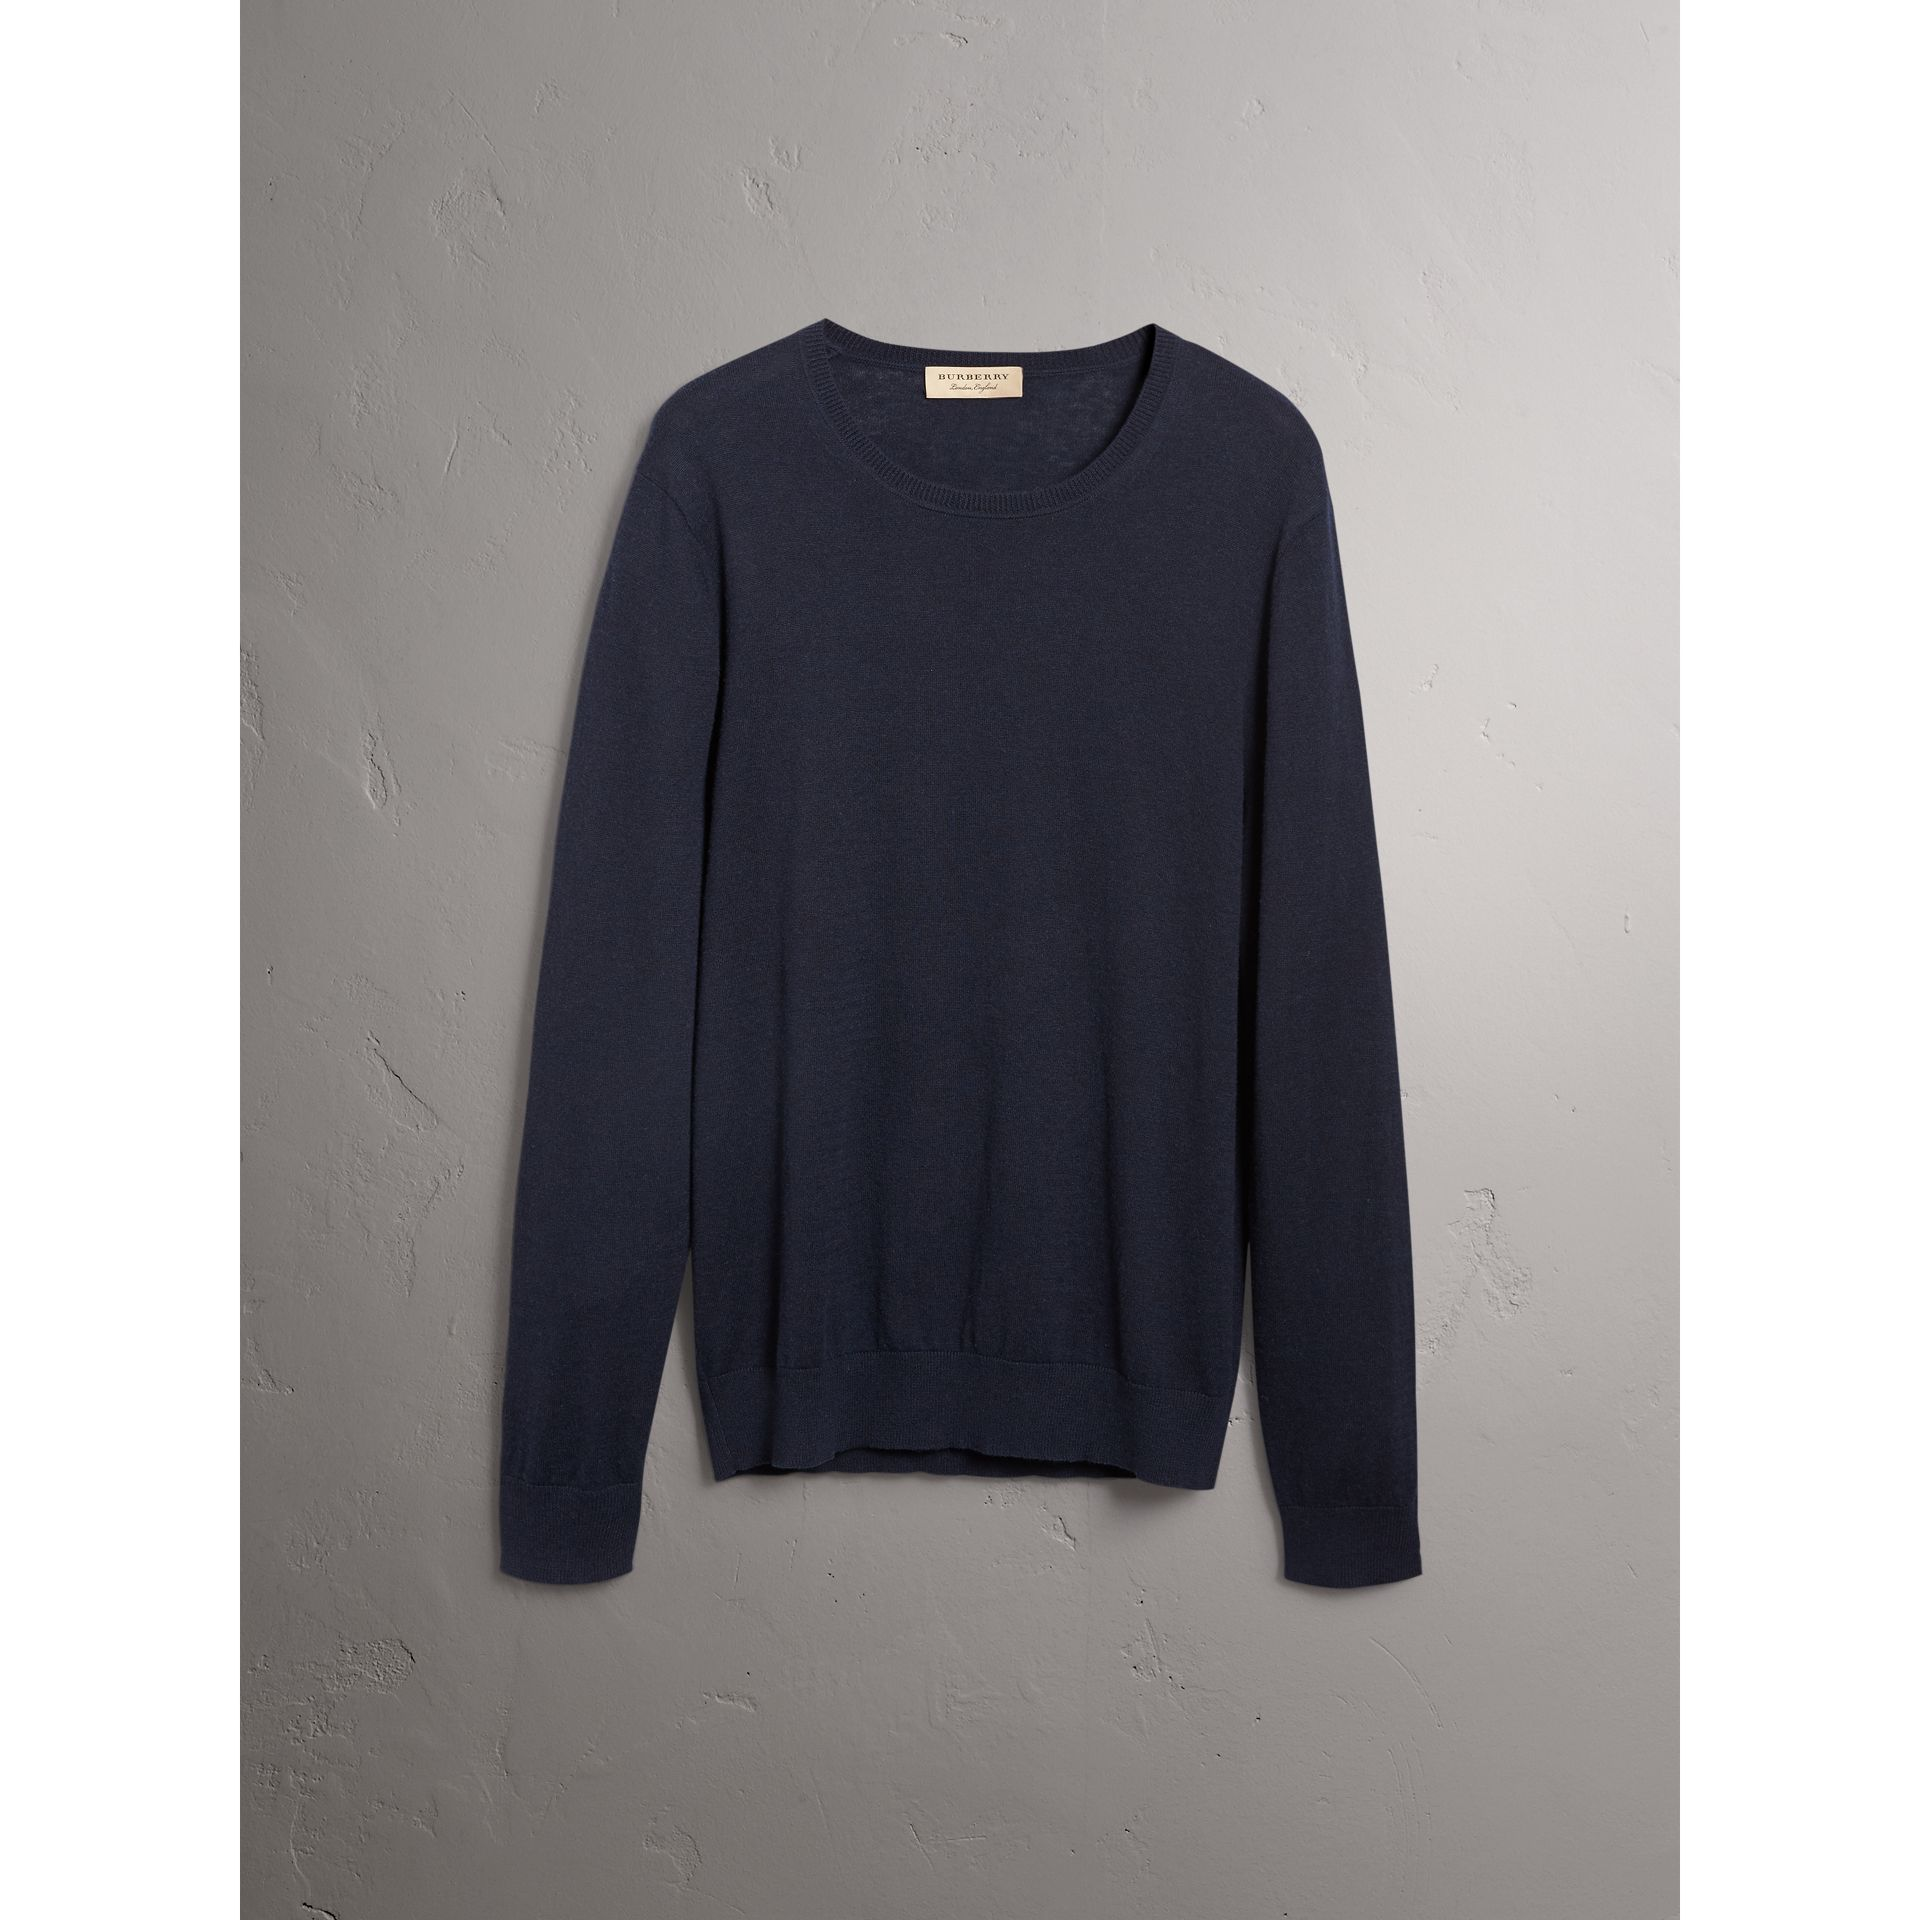 Check Trim Cashmere Cotton Sweater in Navy - Men | Burberry Canada - gallery image 4